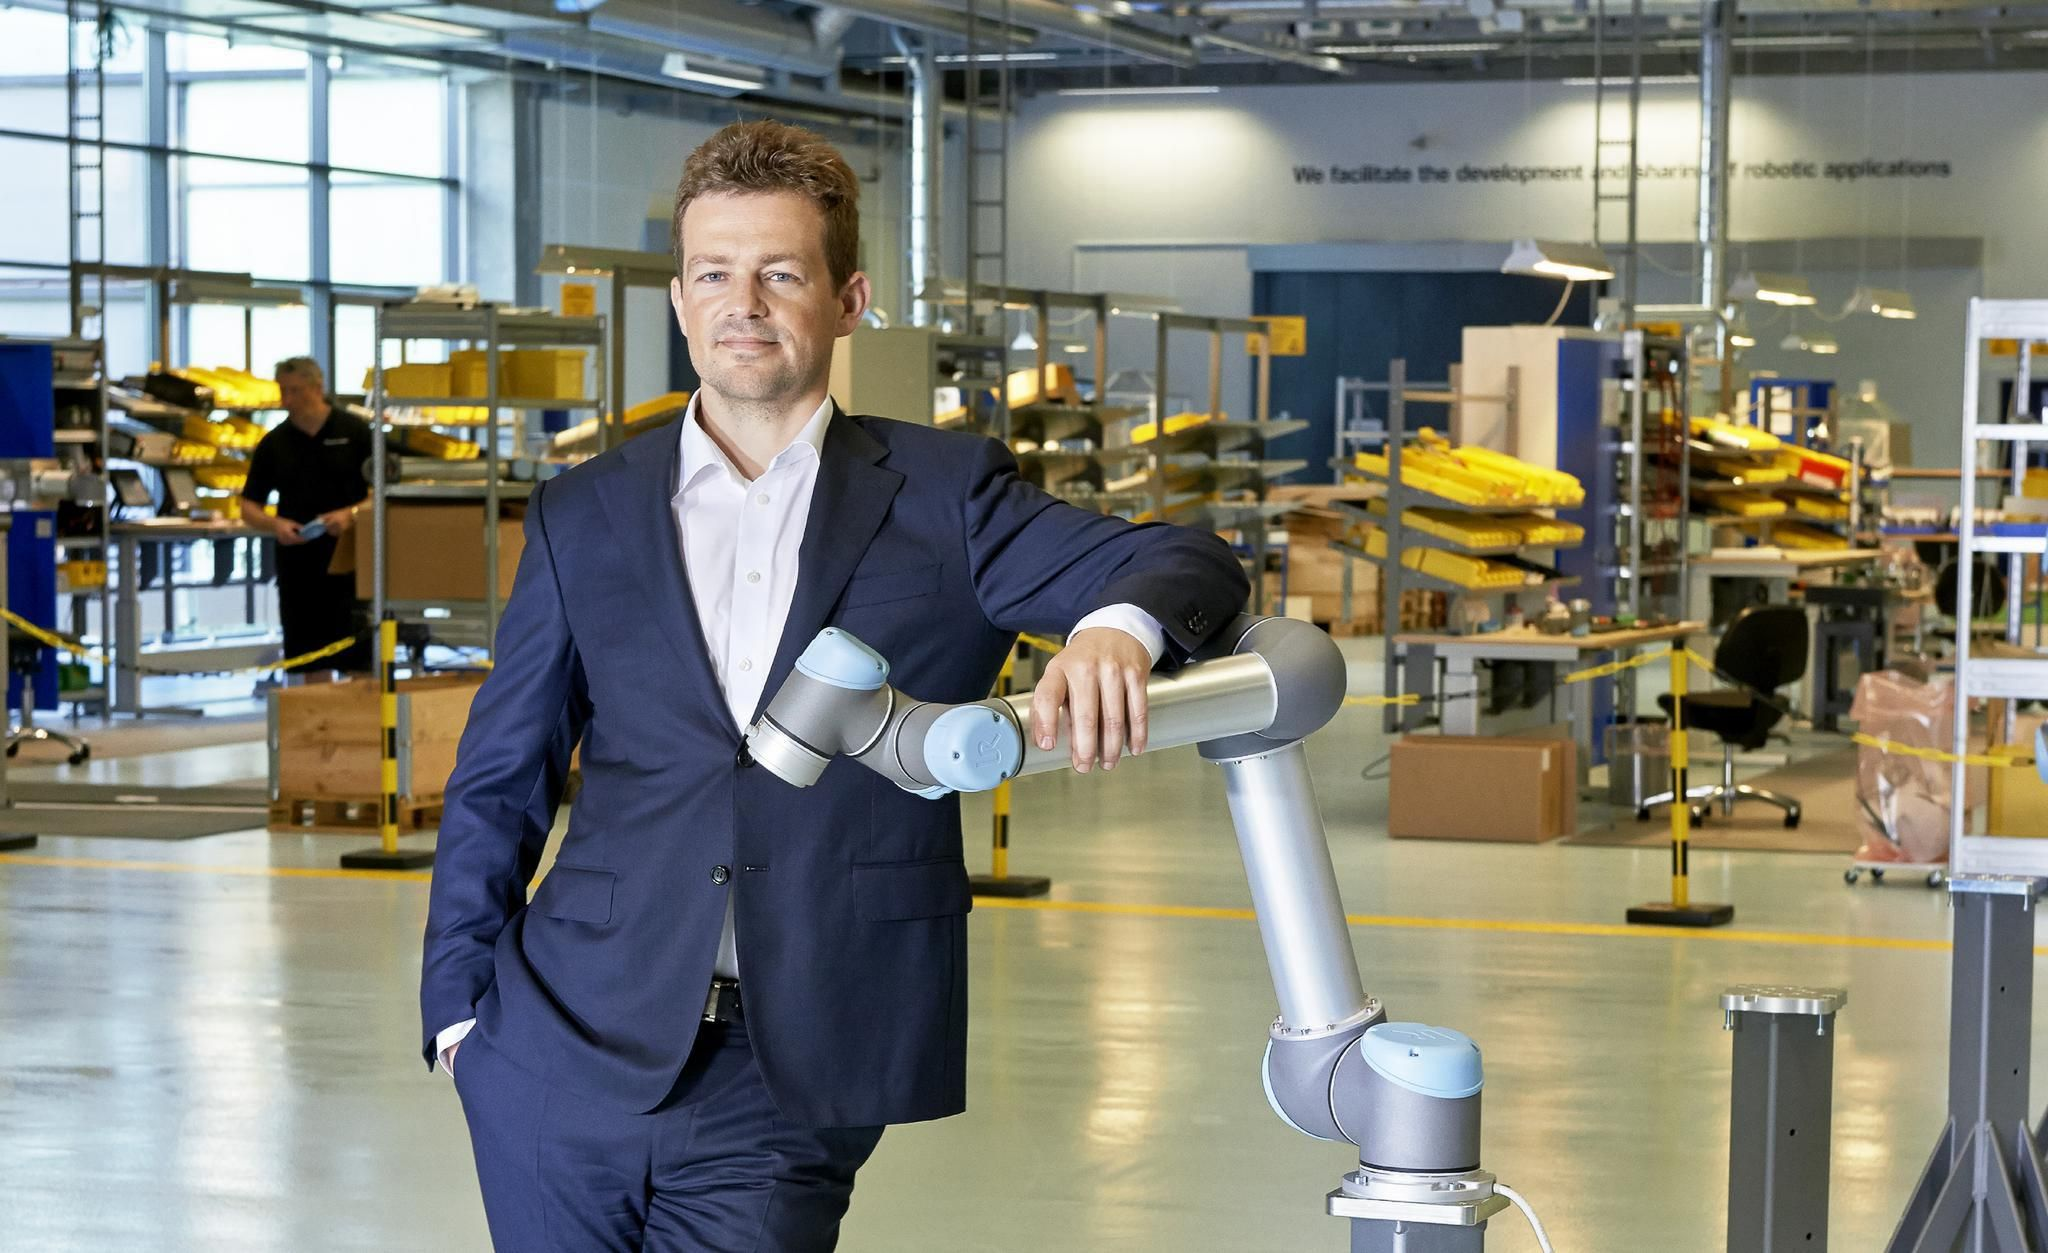 THE IRONIES OF INDUSTRY 4.0